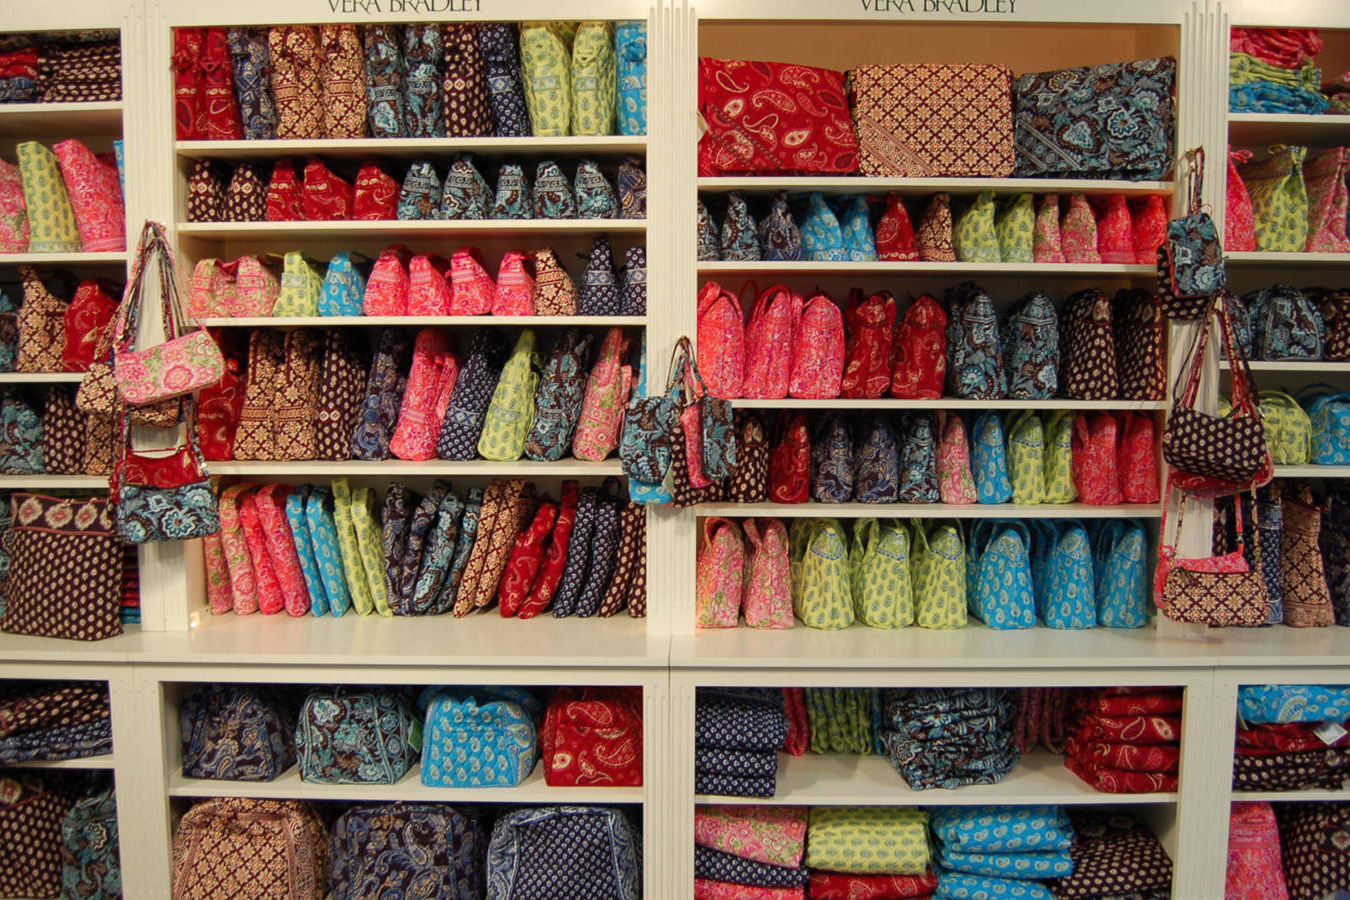 vera_bradley-jungle_jims_internation-flickr-1560x900.jpg